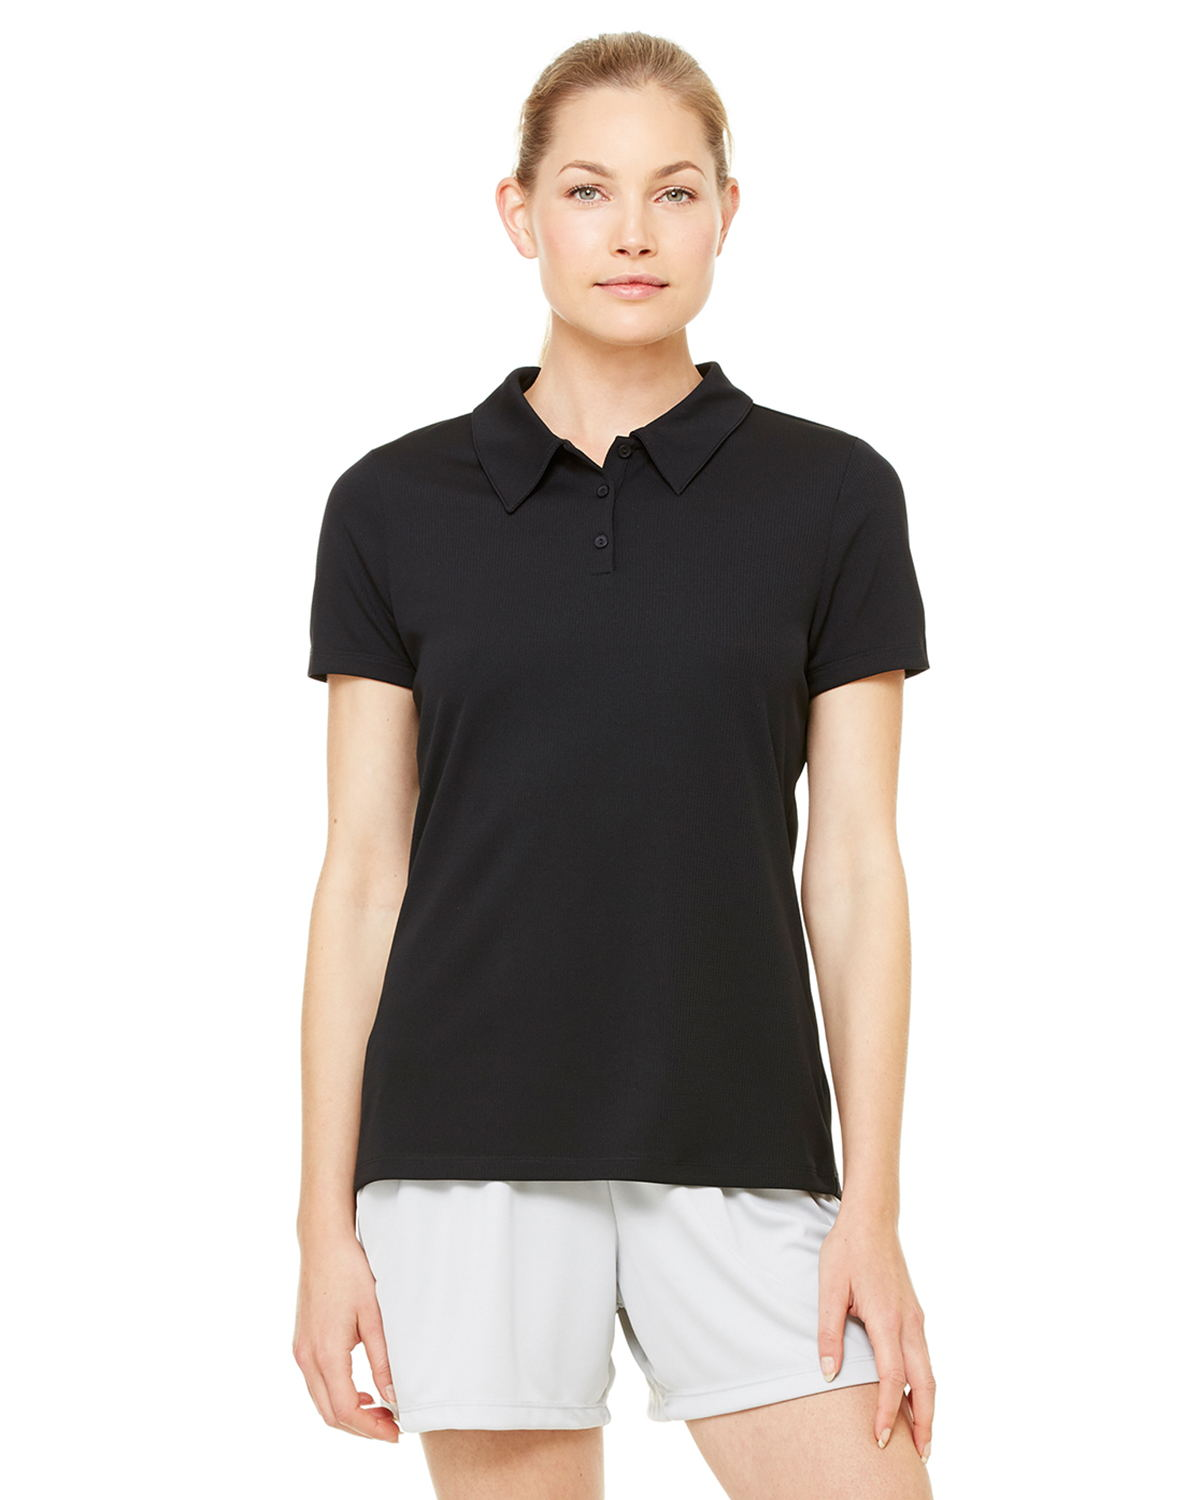 Alo W1709 - Ladies' Performance Three-Button Mesh Polo